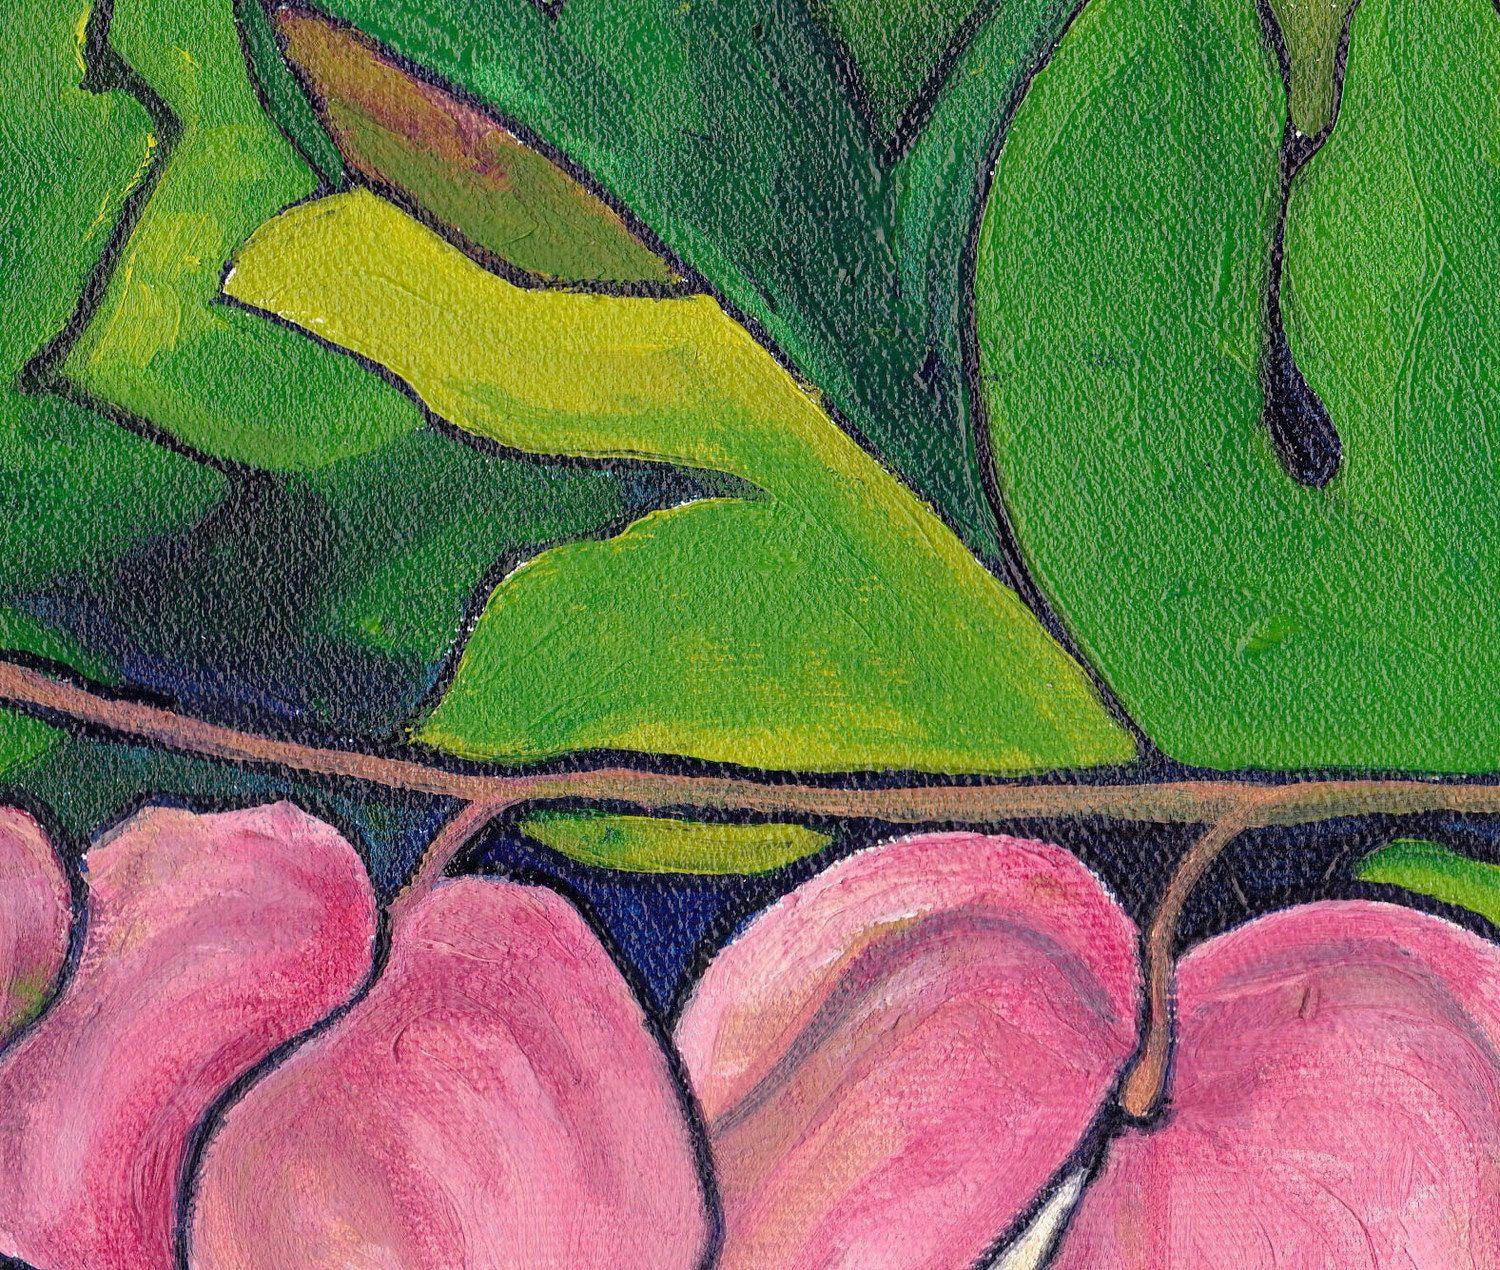 Original Flower Painting Out On A Limb Oil Floral Painting 12x12 on Canvas Ready To Hang Wall Art